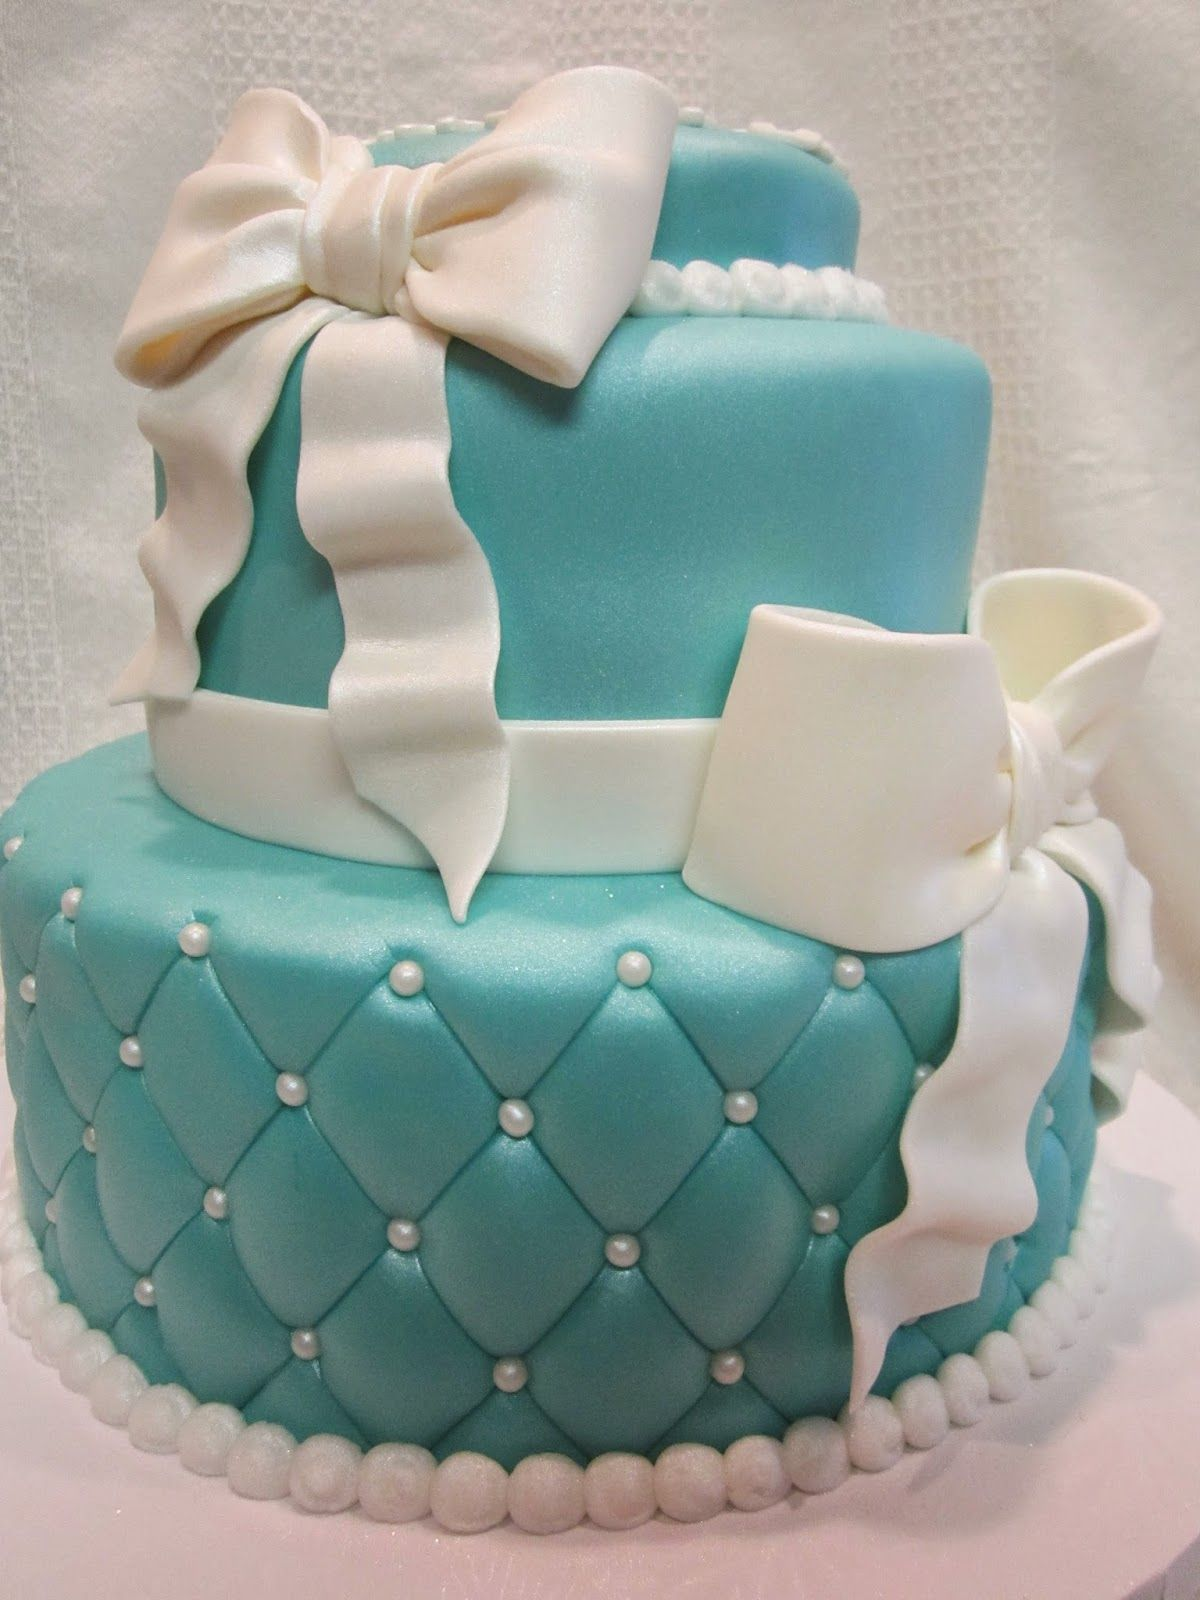 Tiffany And Co Cake Google Search Cakes Cupcakes Cake Pops In